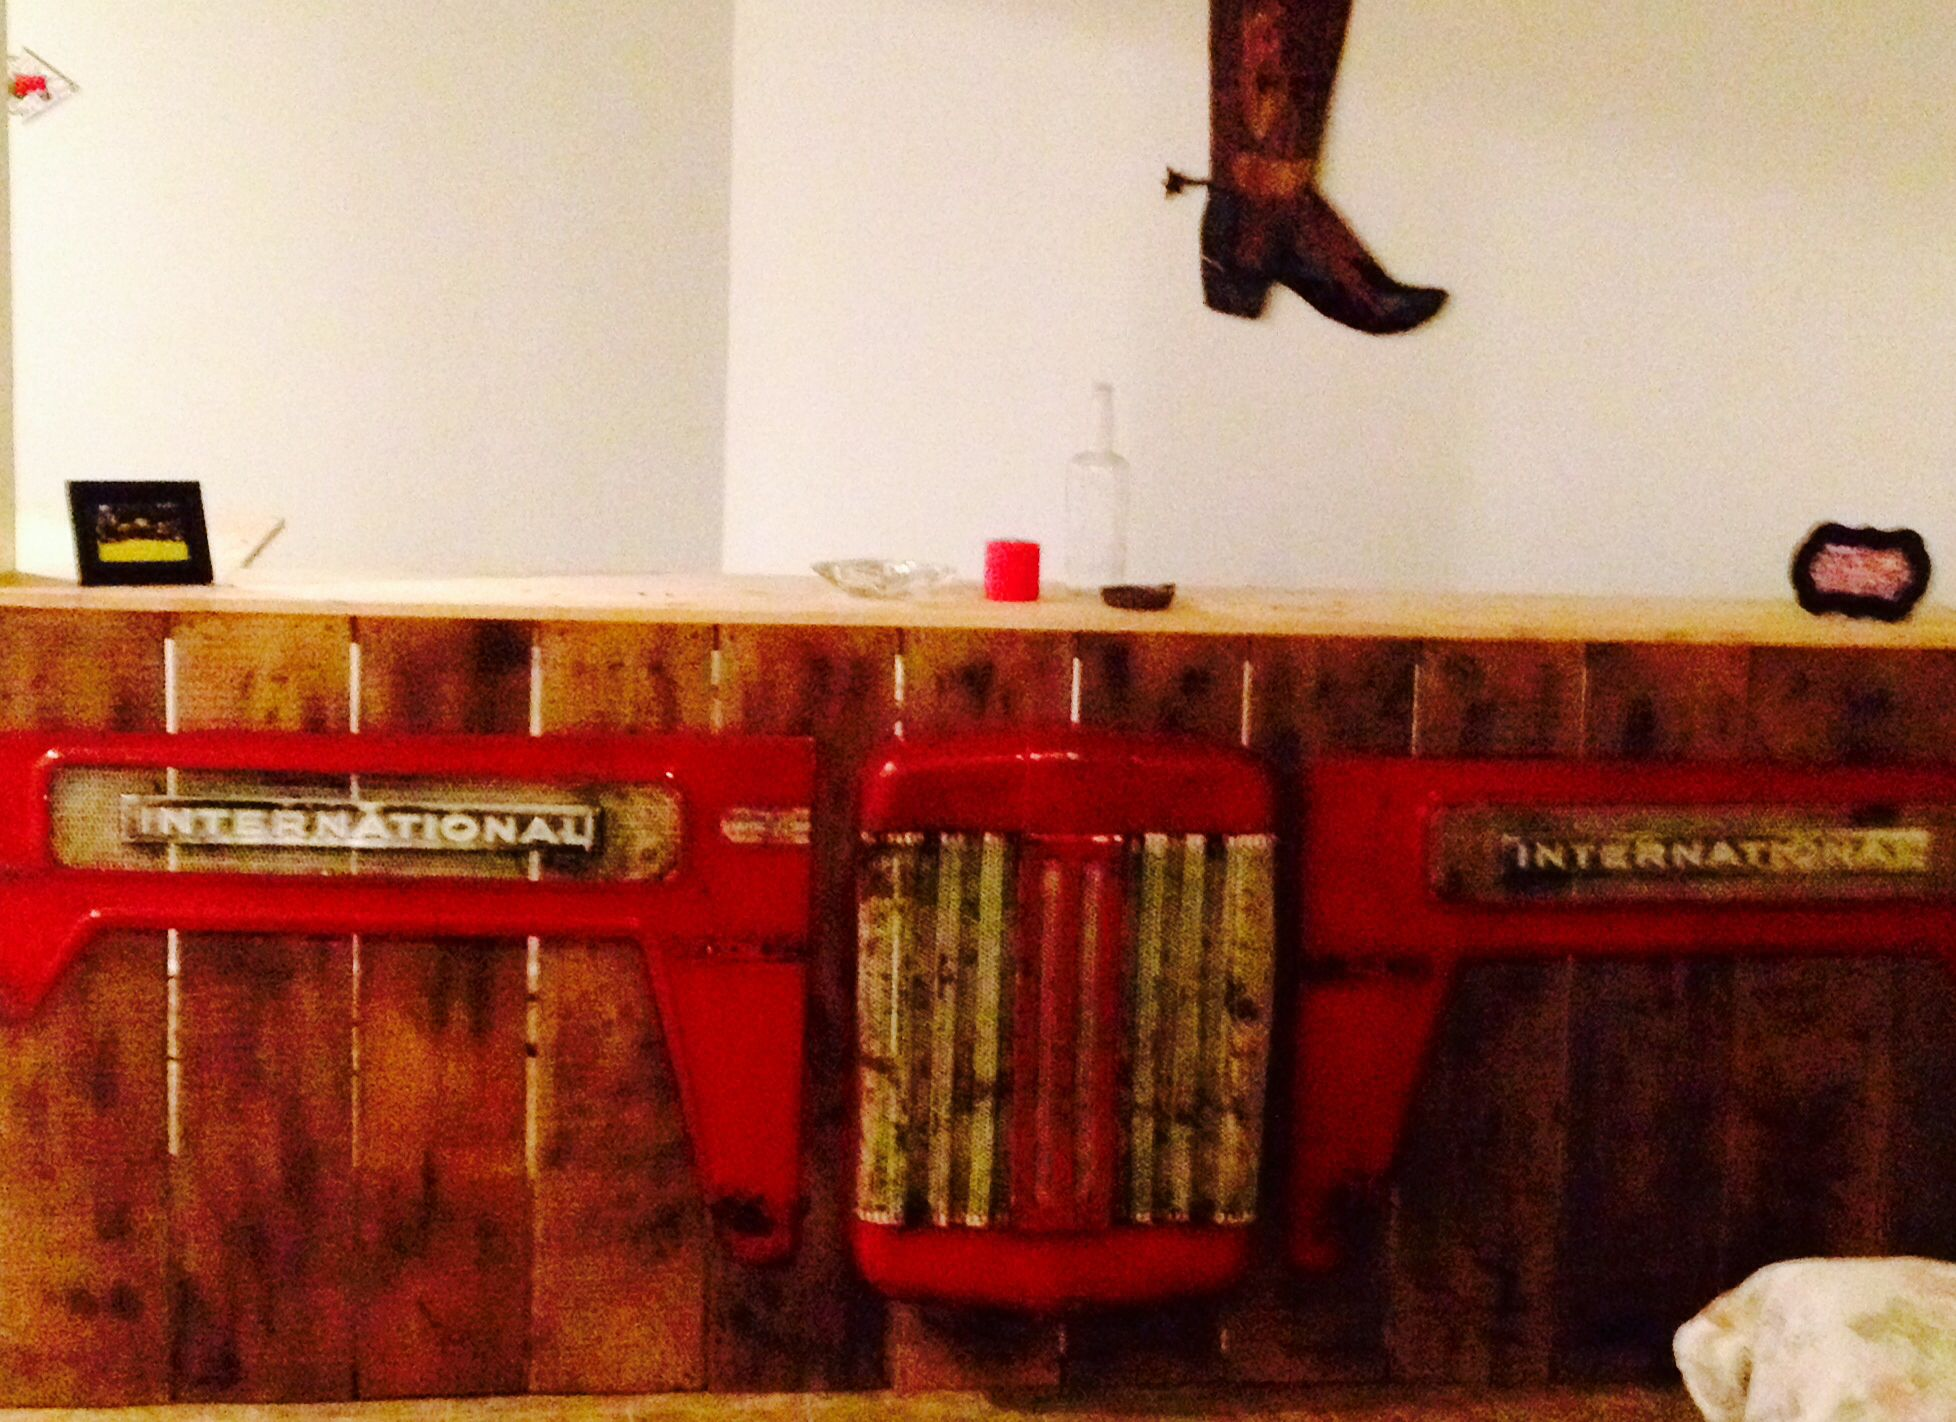 International harvester tractor bar ideas for adams man cave